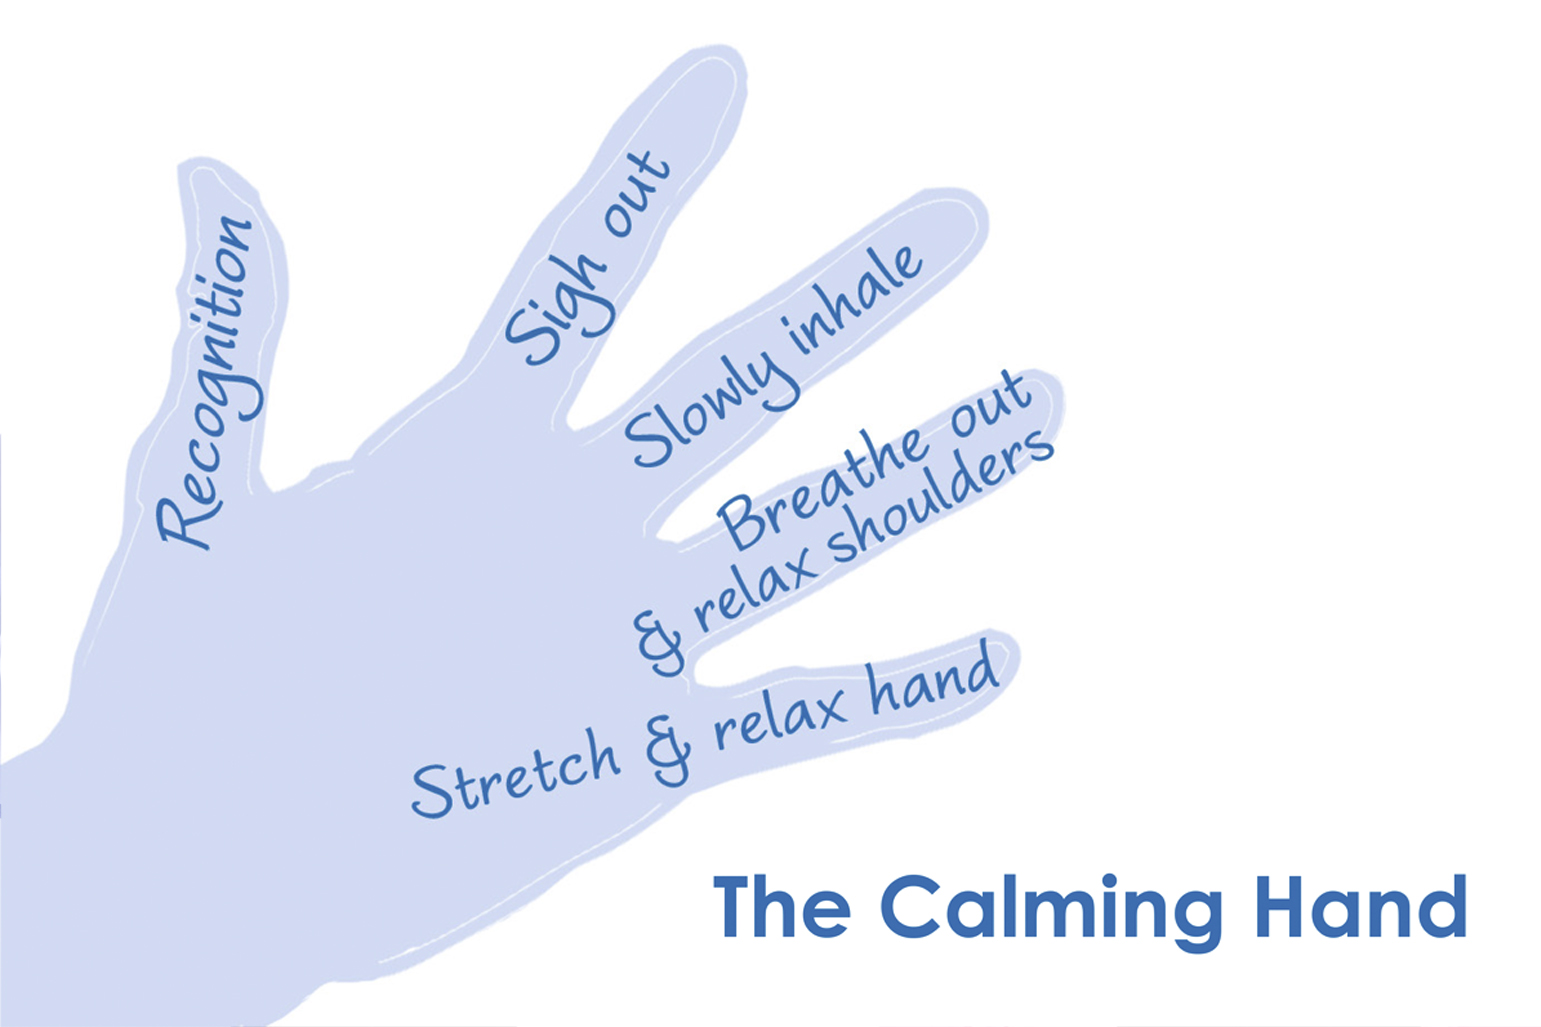 The Calming Hand